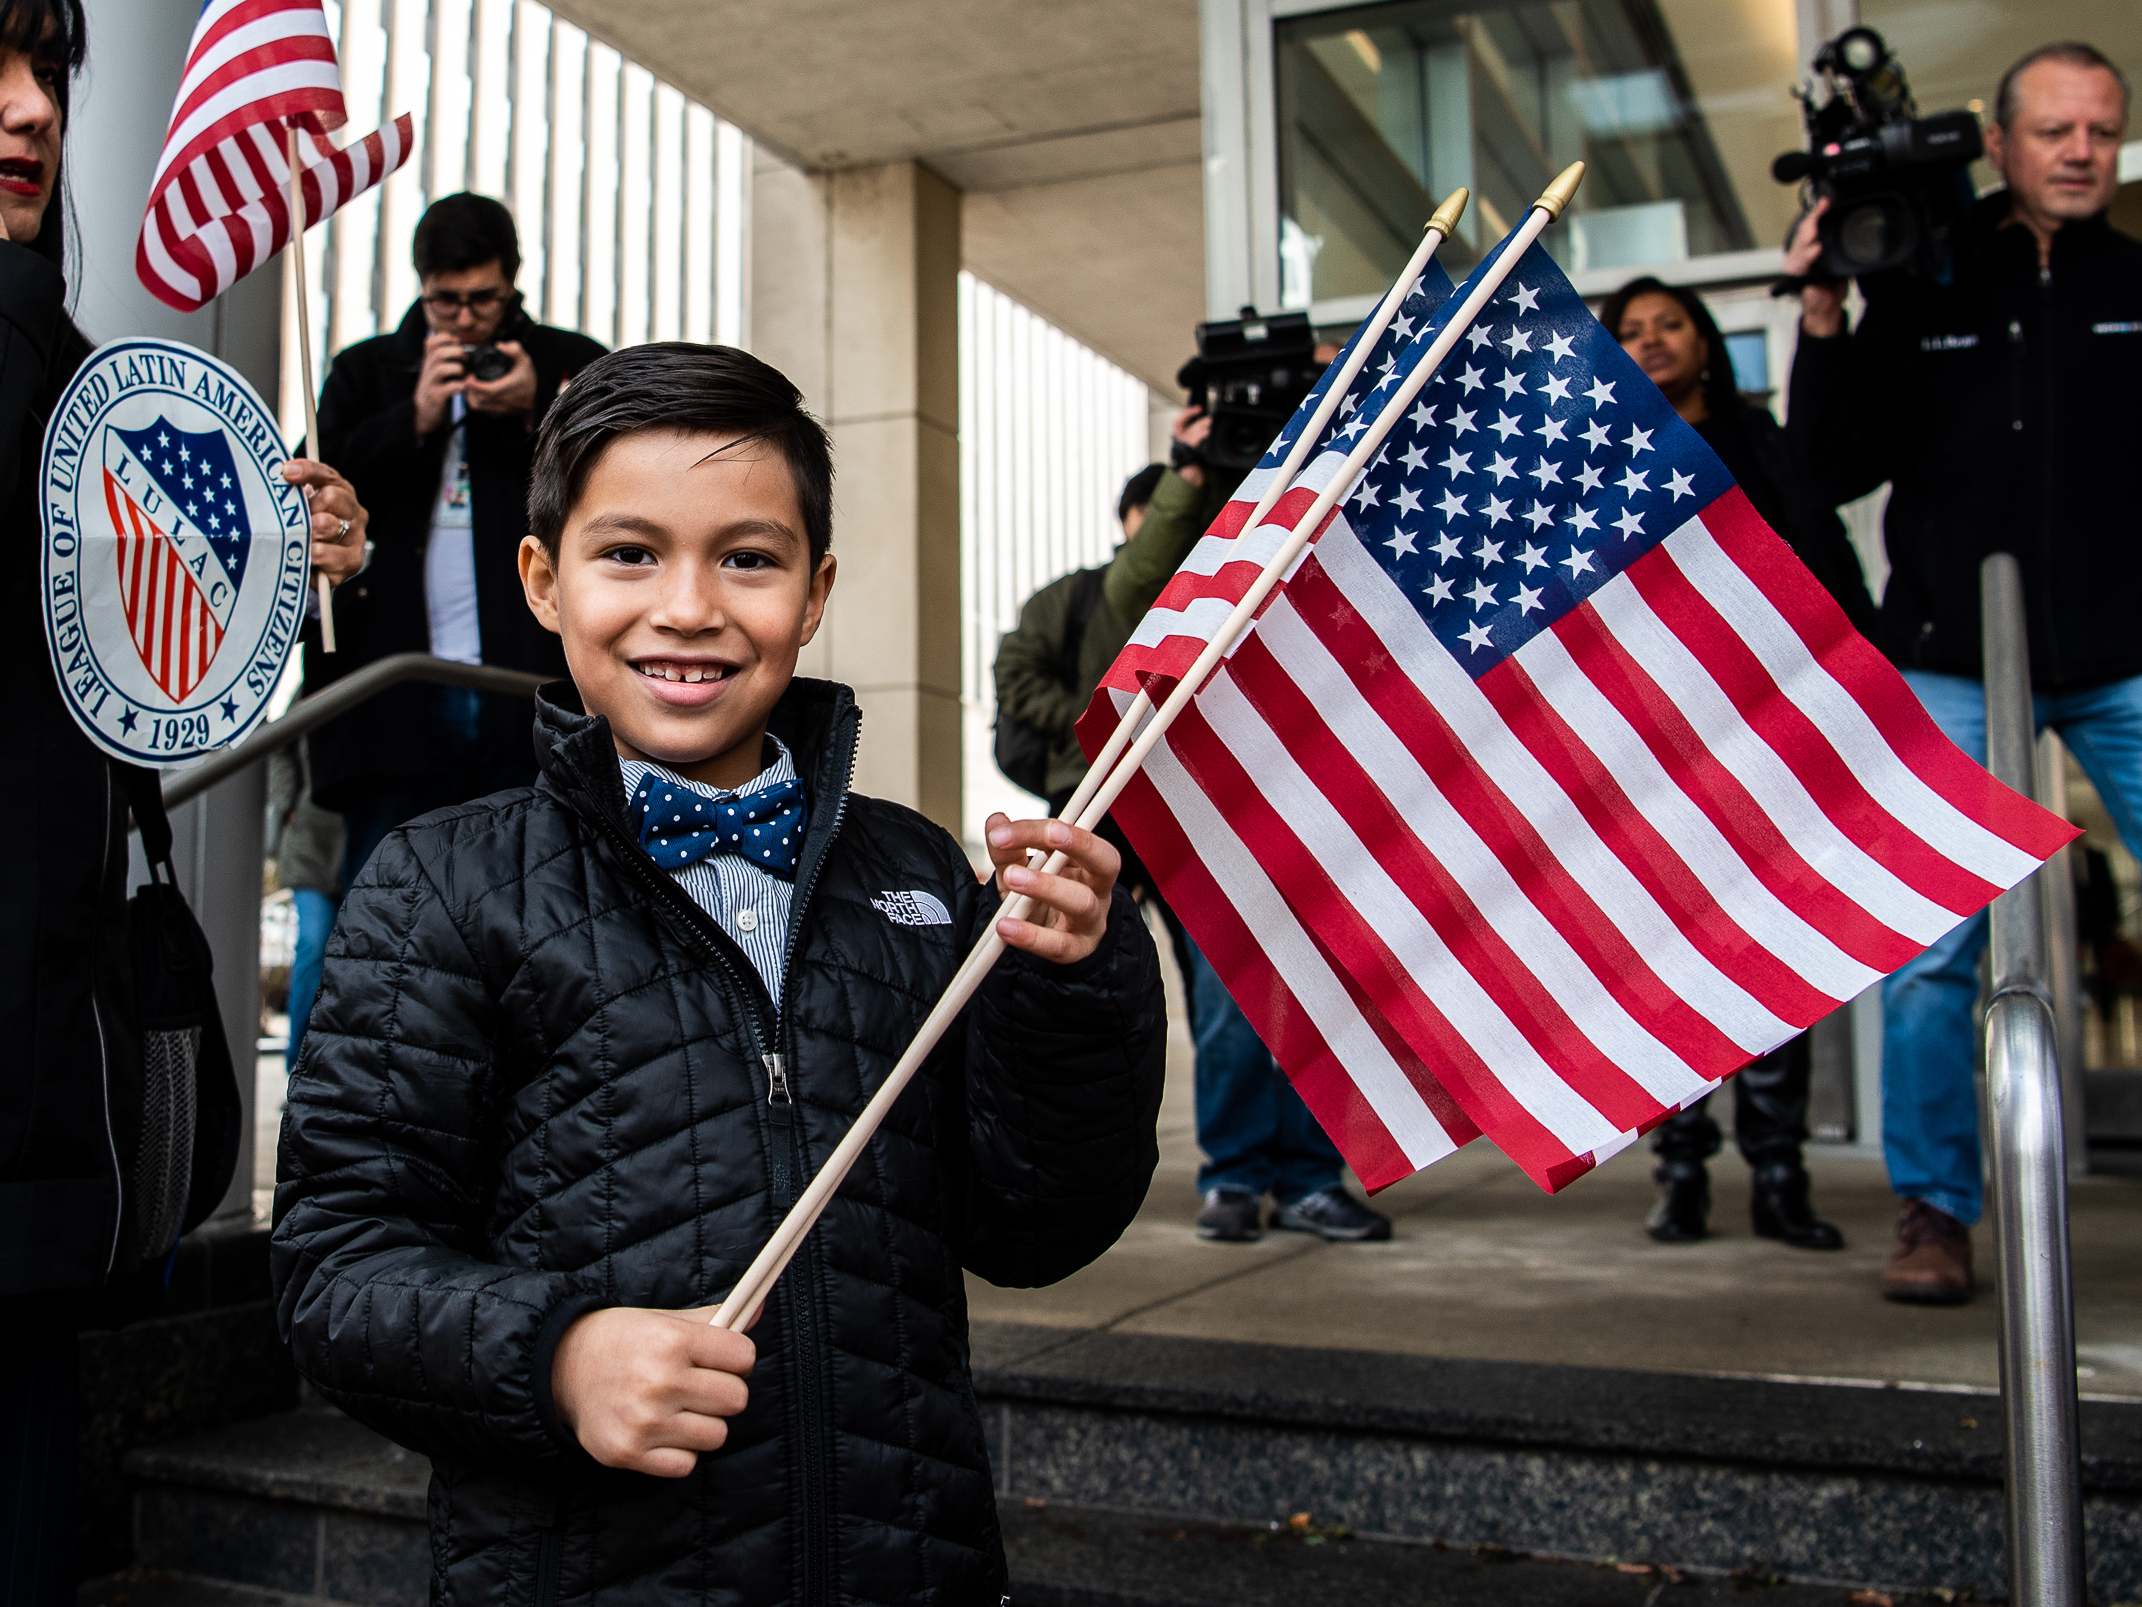 Iker Velasquez, an 8-year-old asylum seeker, waits outside the Chicago Immigration Court with family, teachers and activists before a hearing for his asylum trial, Wednesday, Nov. 20, 2019.